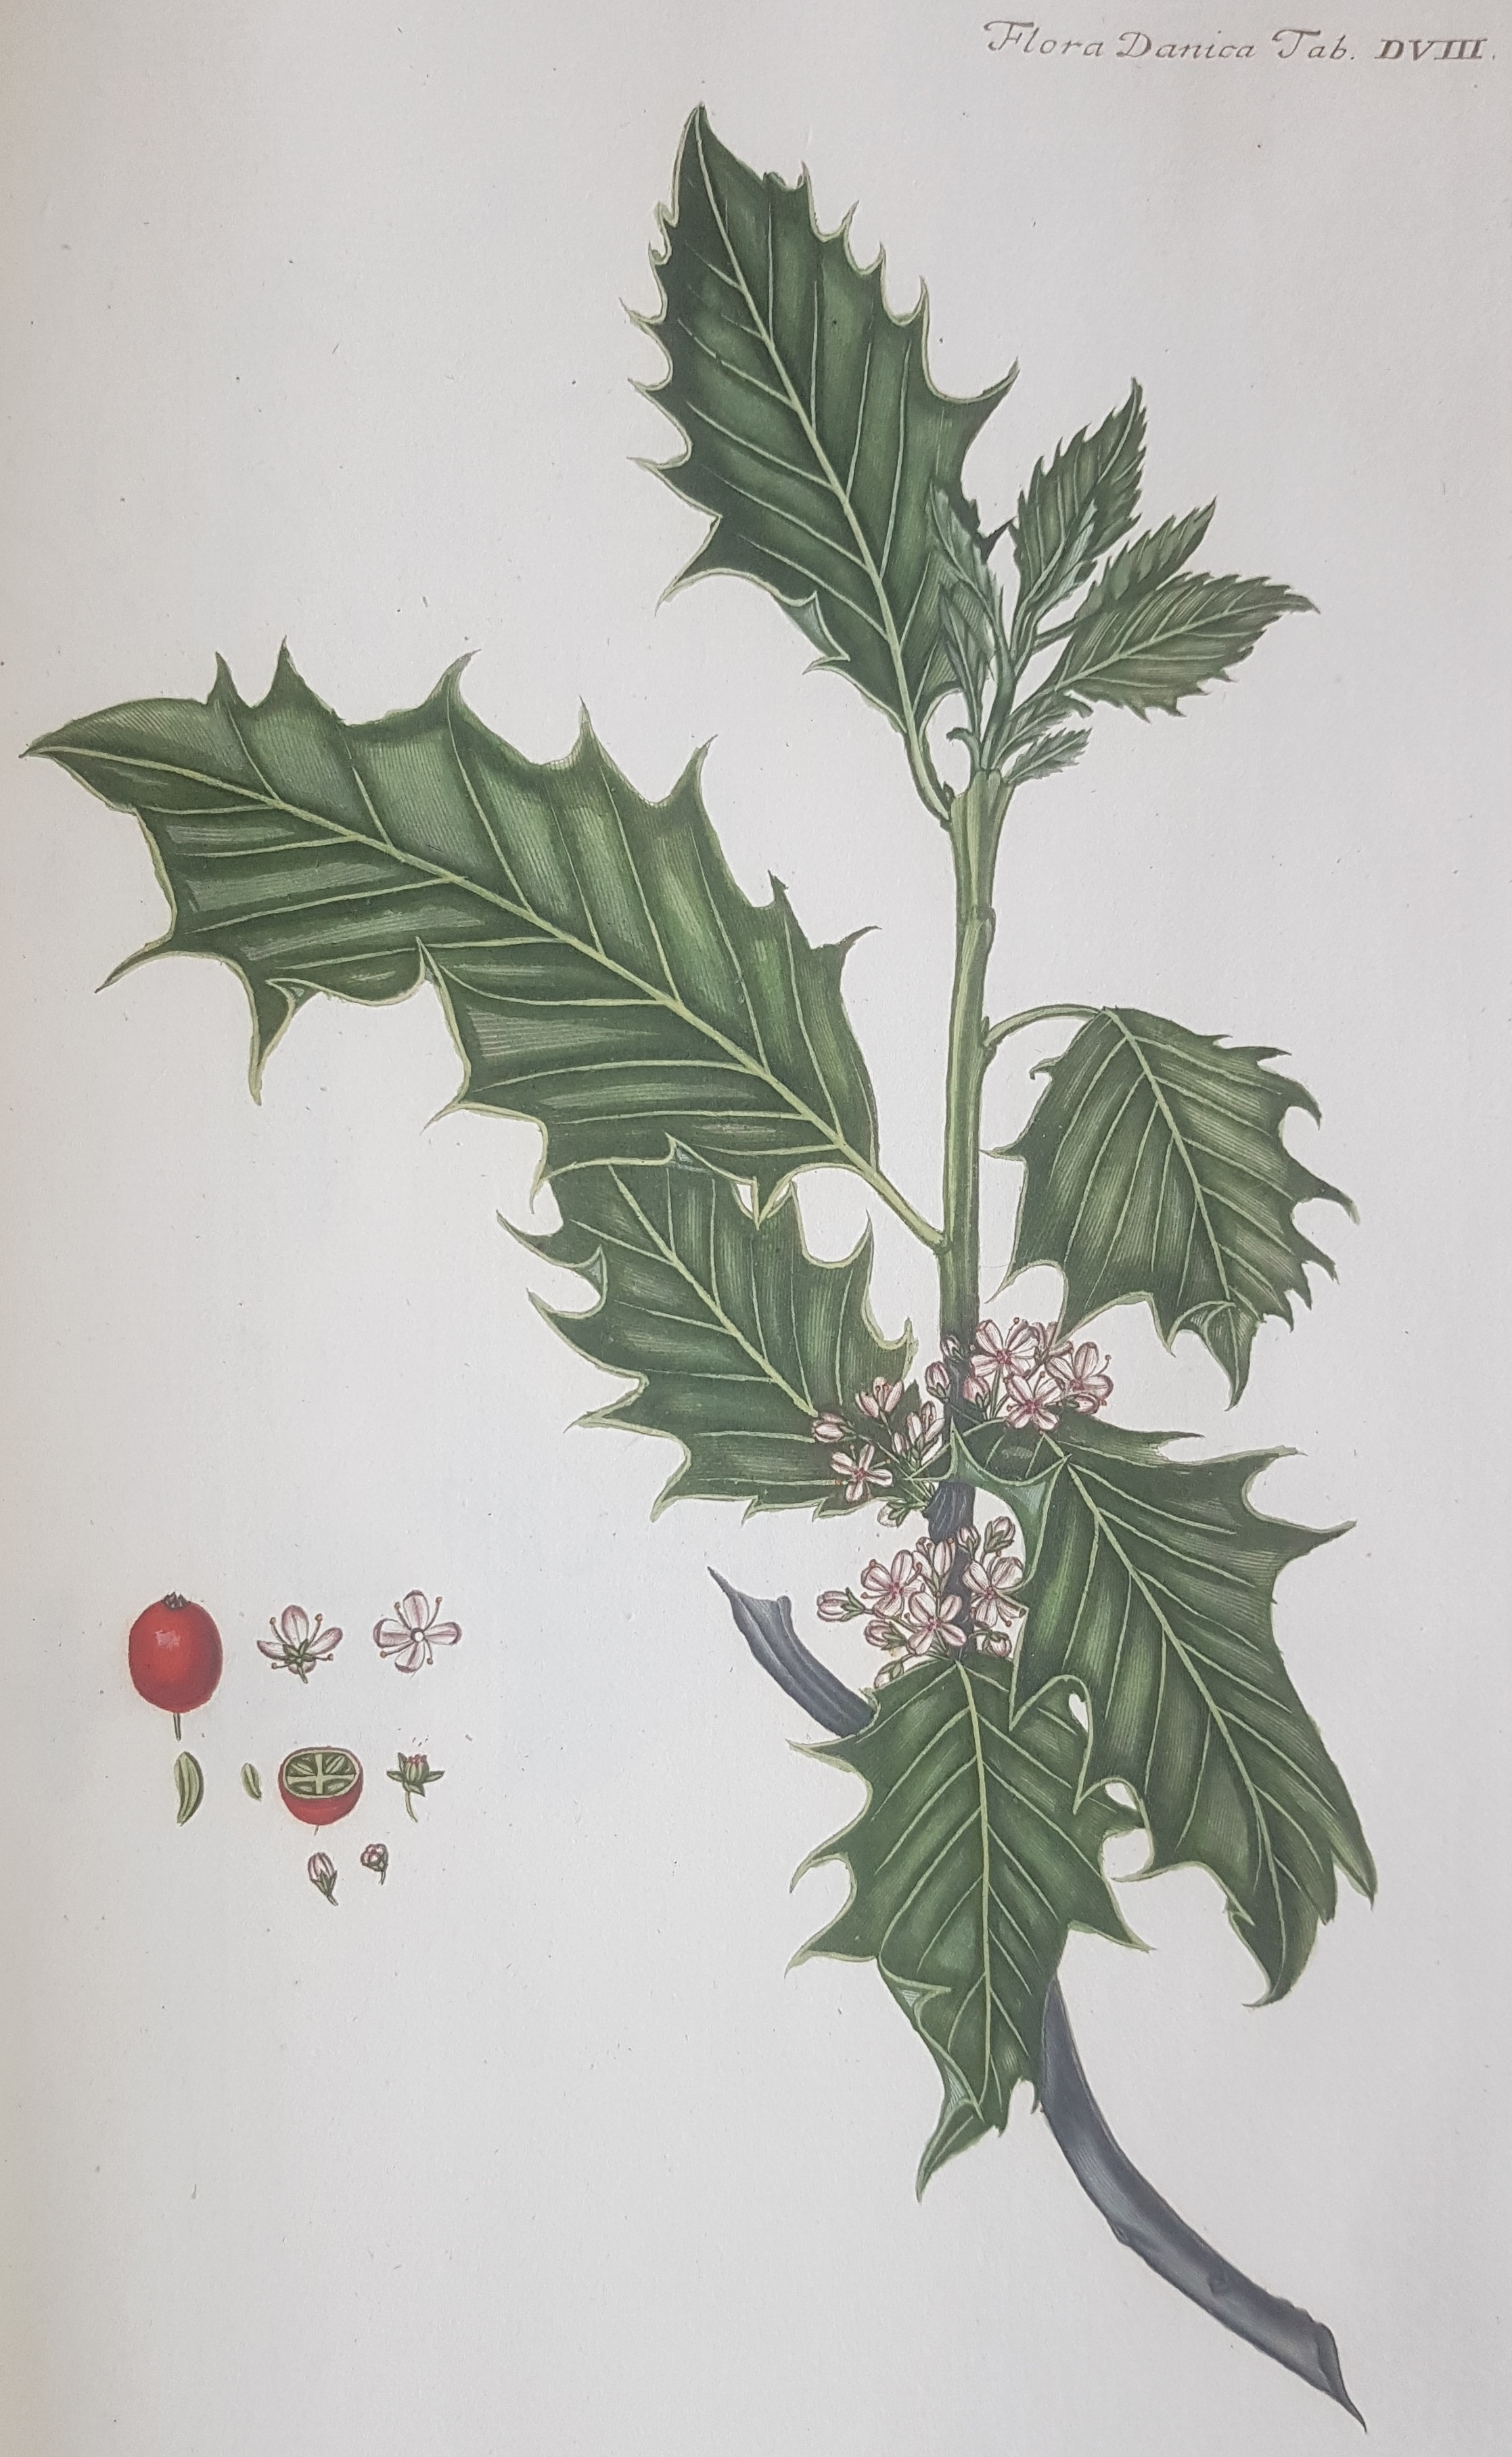 Holly illustration from the 'Flora Danica'.